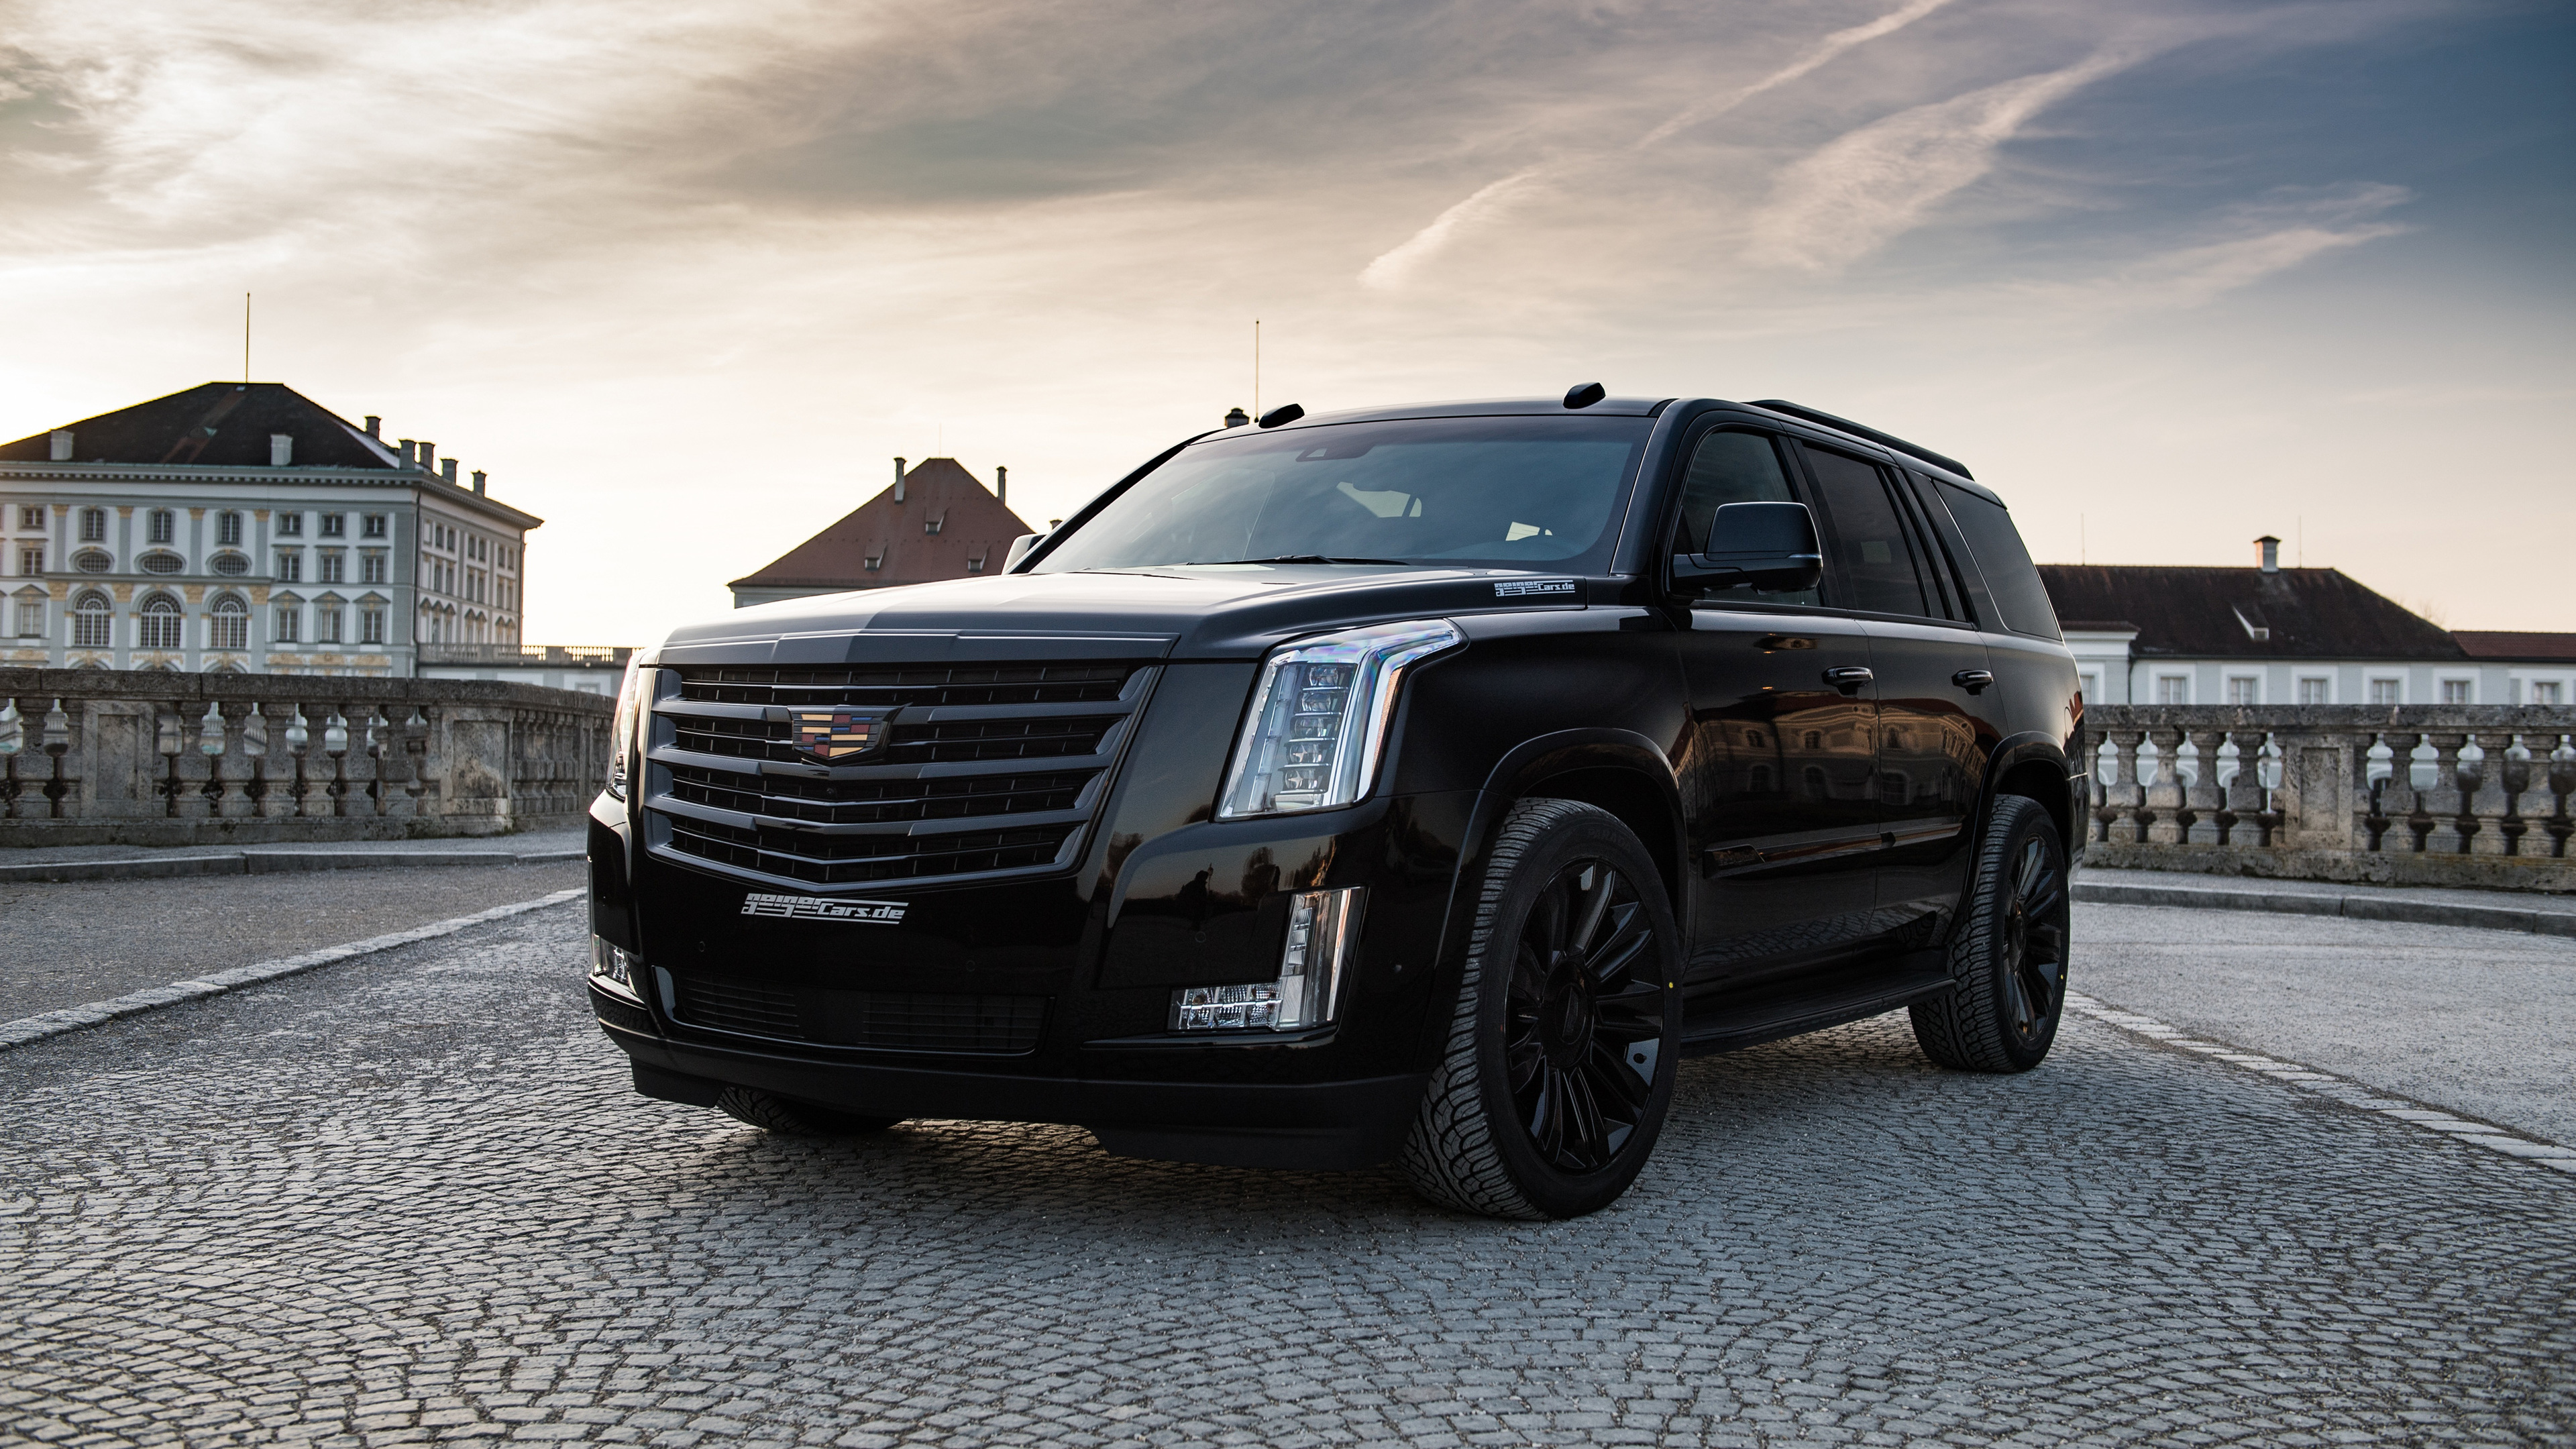 geiger cadillac escalade black edition 2018 1539110037 - Geiger Cadillac Escalade Black Edition 2018 - hd-wallpapers, cars wallpapers, cadillac wallpapers, 4k-wallpapers, 2018 cars wallpapers